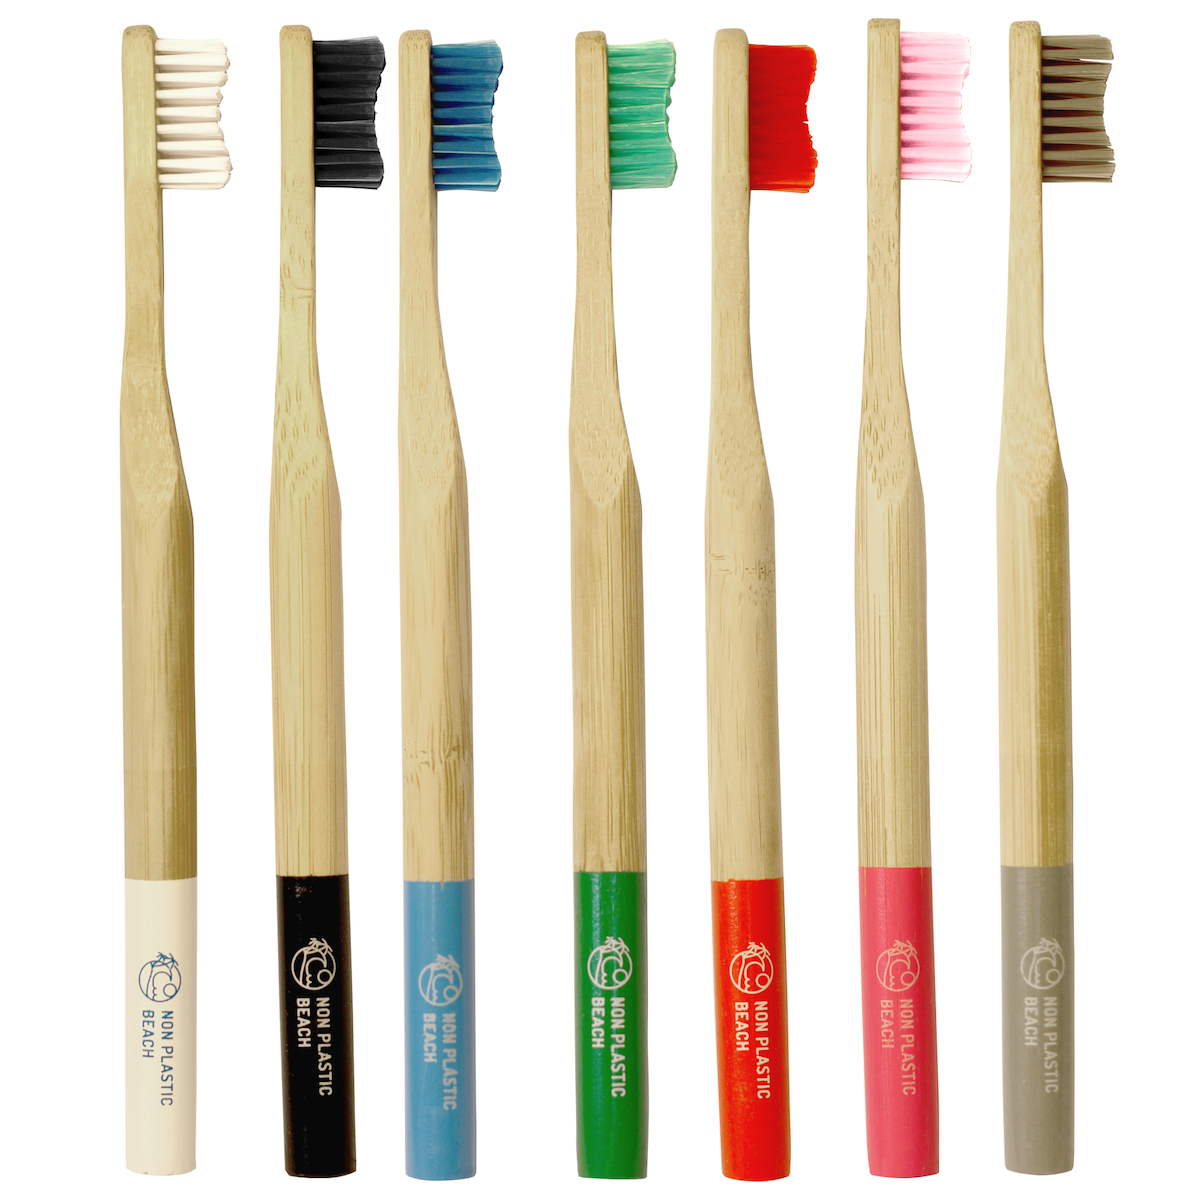 Biodegradable & Sustainable Bamboo Toothbrush (Adult)